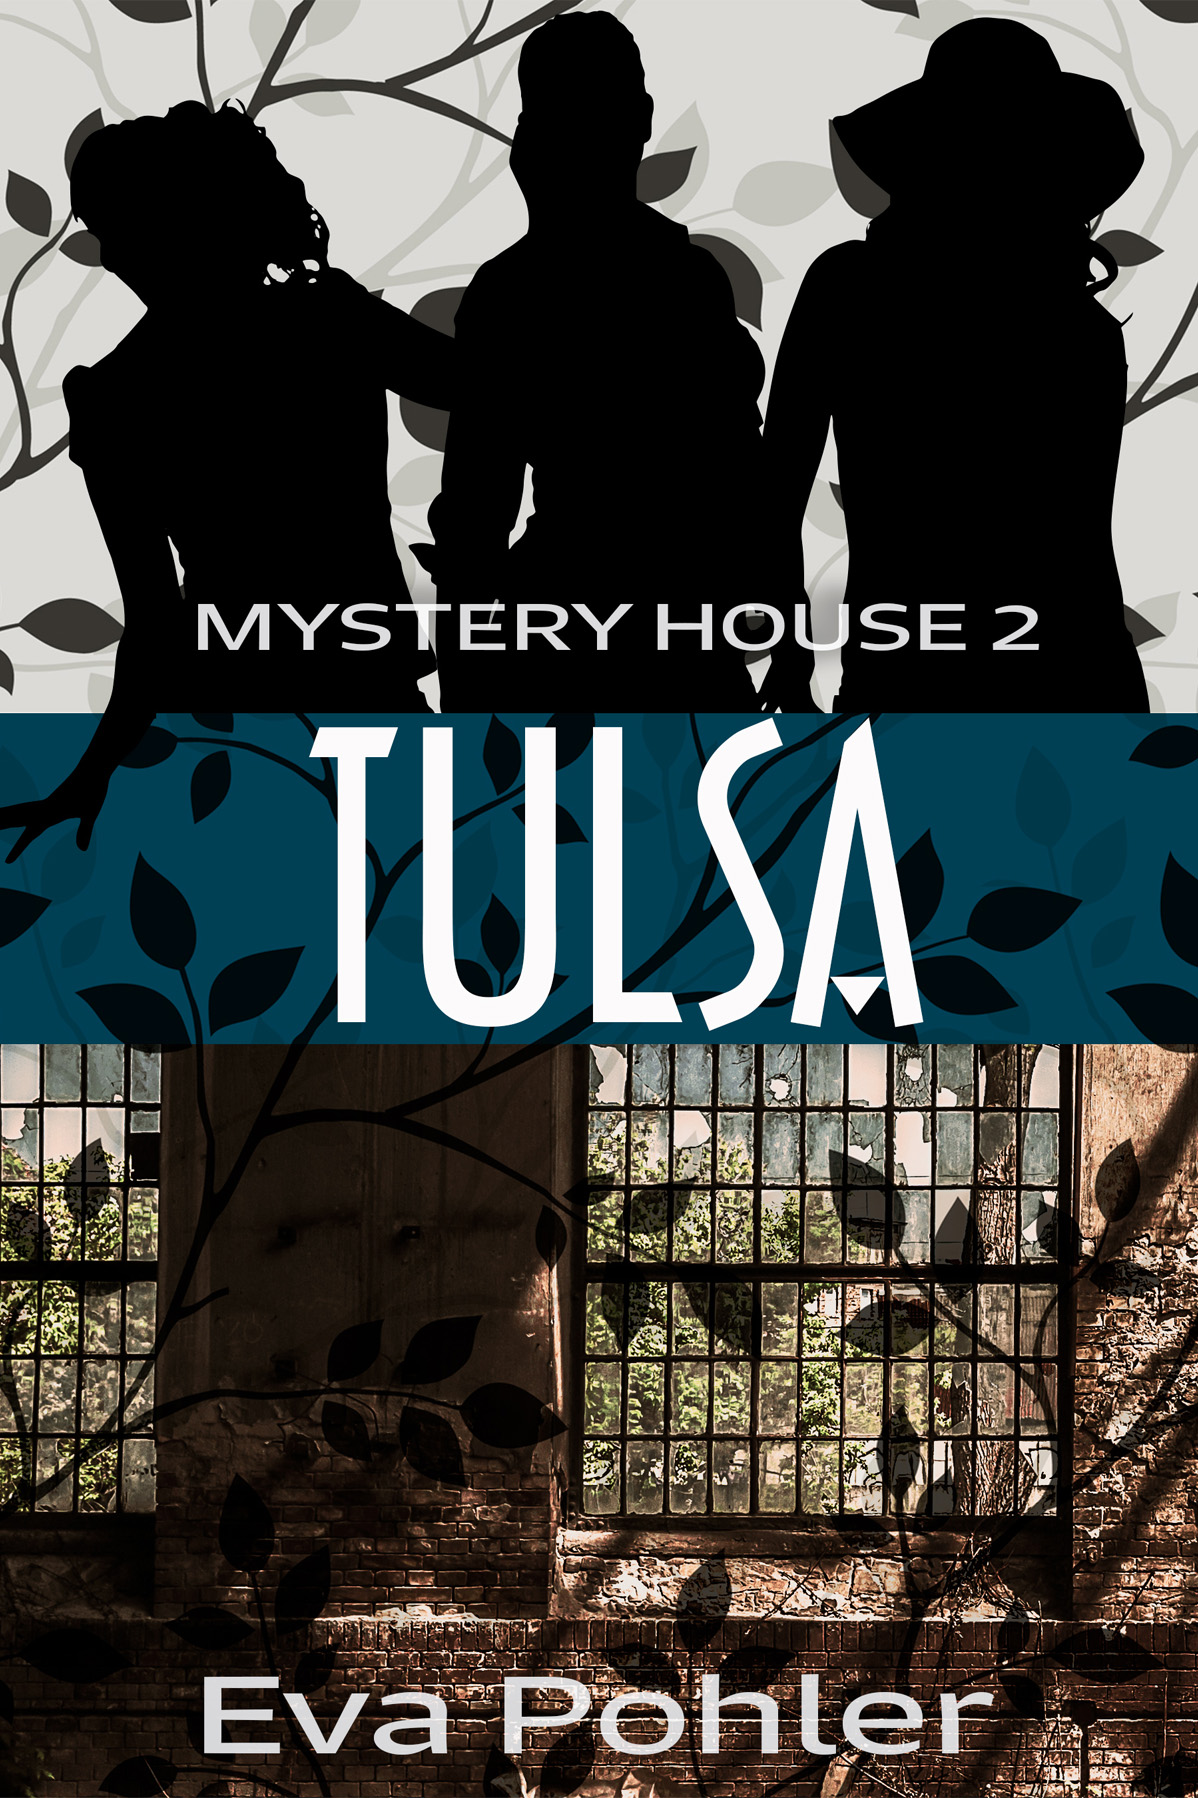 Mystery House Tulsa by Eva Pohler, cover by Book Cover Corner